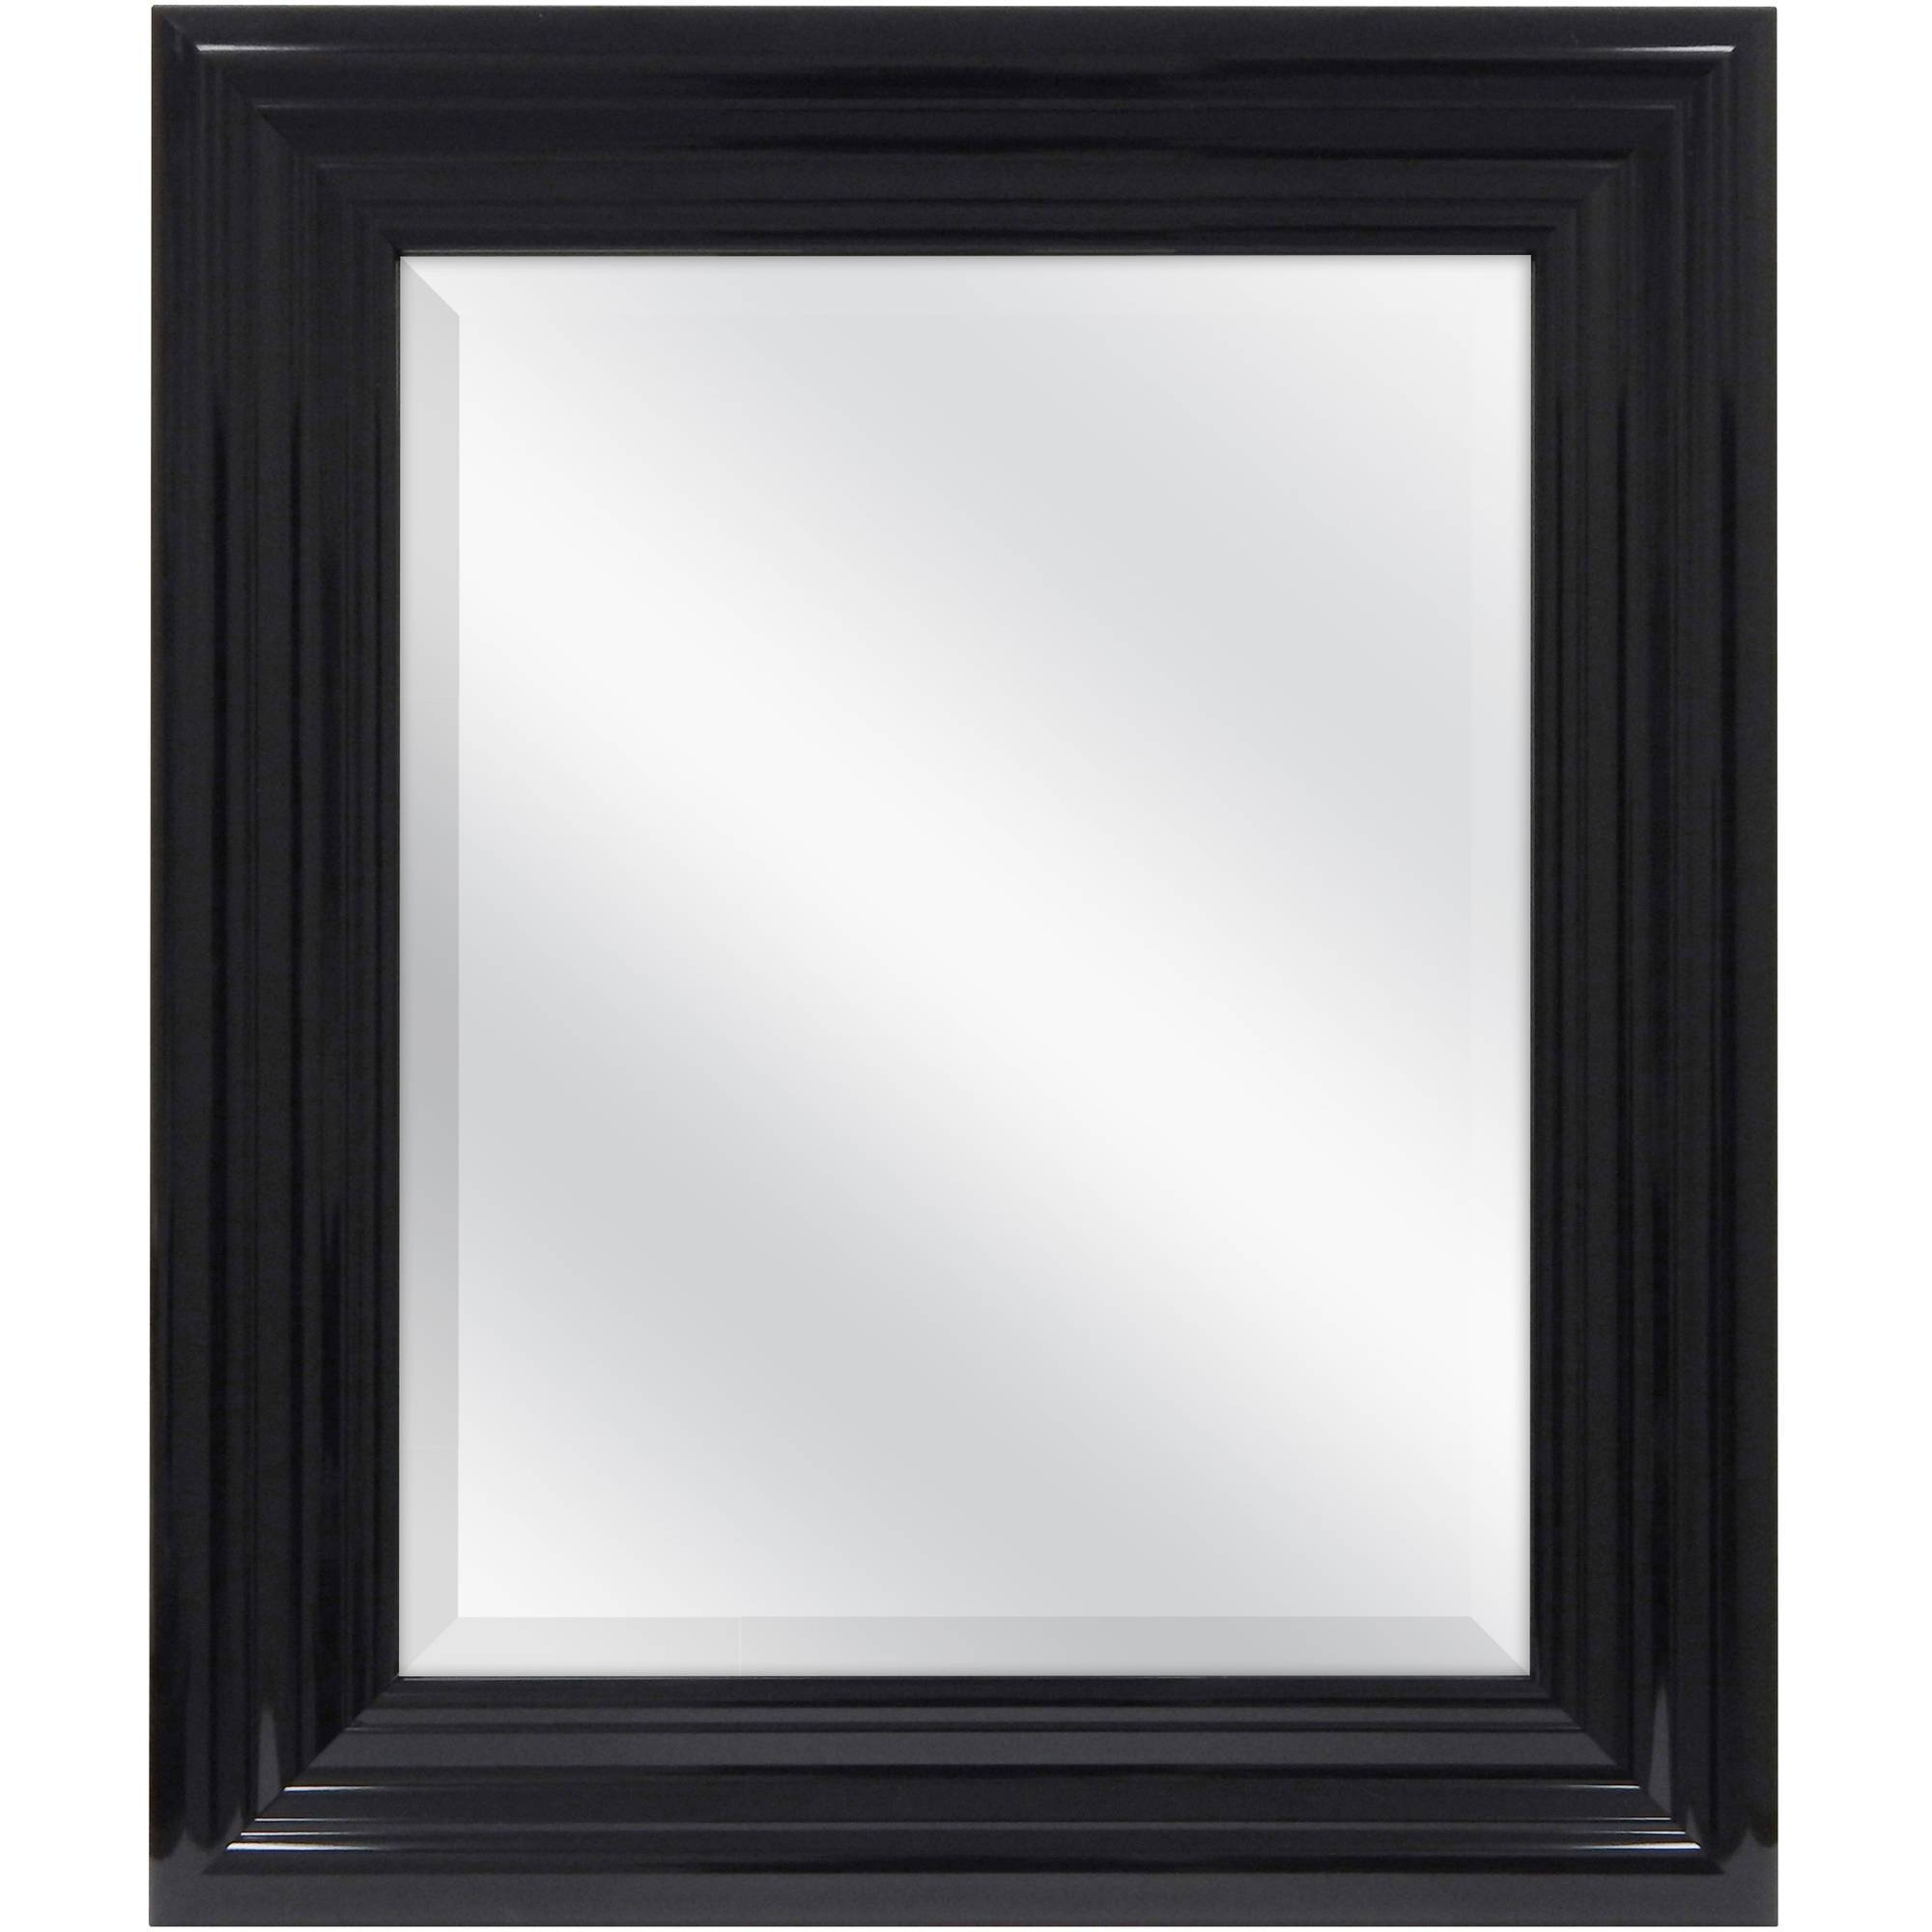 Mirrors - Walmart throughout Long Black Wall Mirrors (Image 11 of 15)